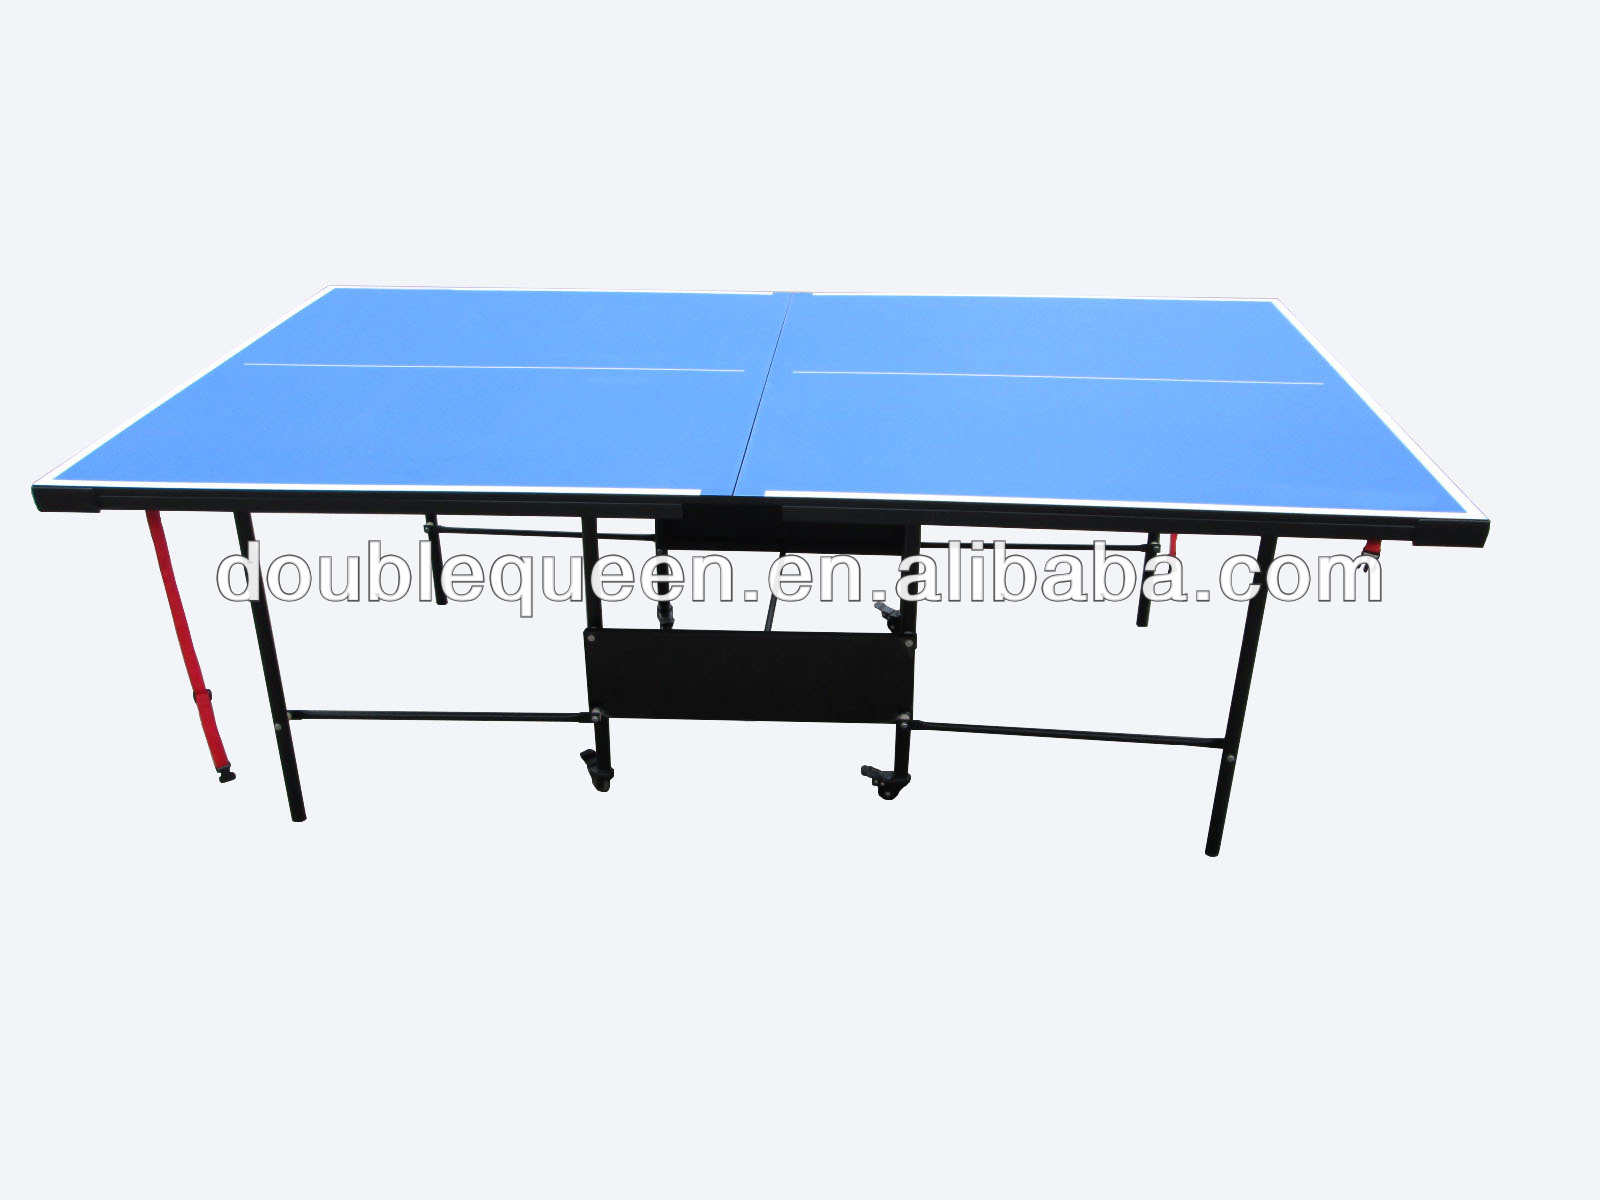 Cheap Pingpong Table Cheap Pingpong Table Suppliers and